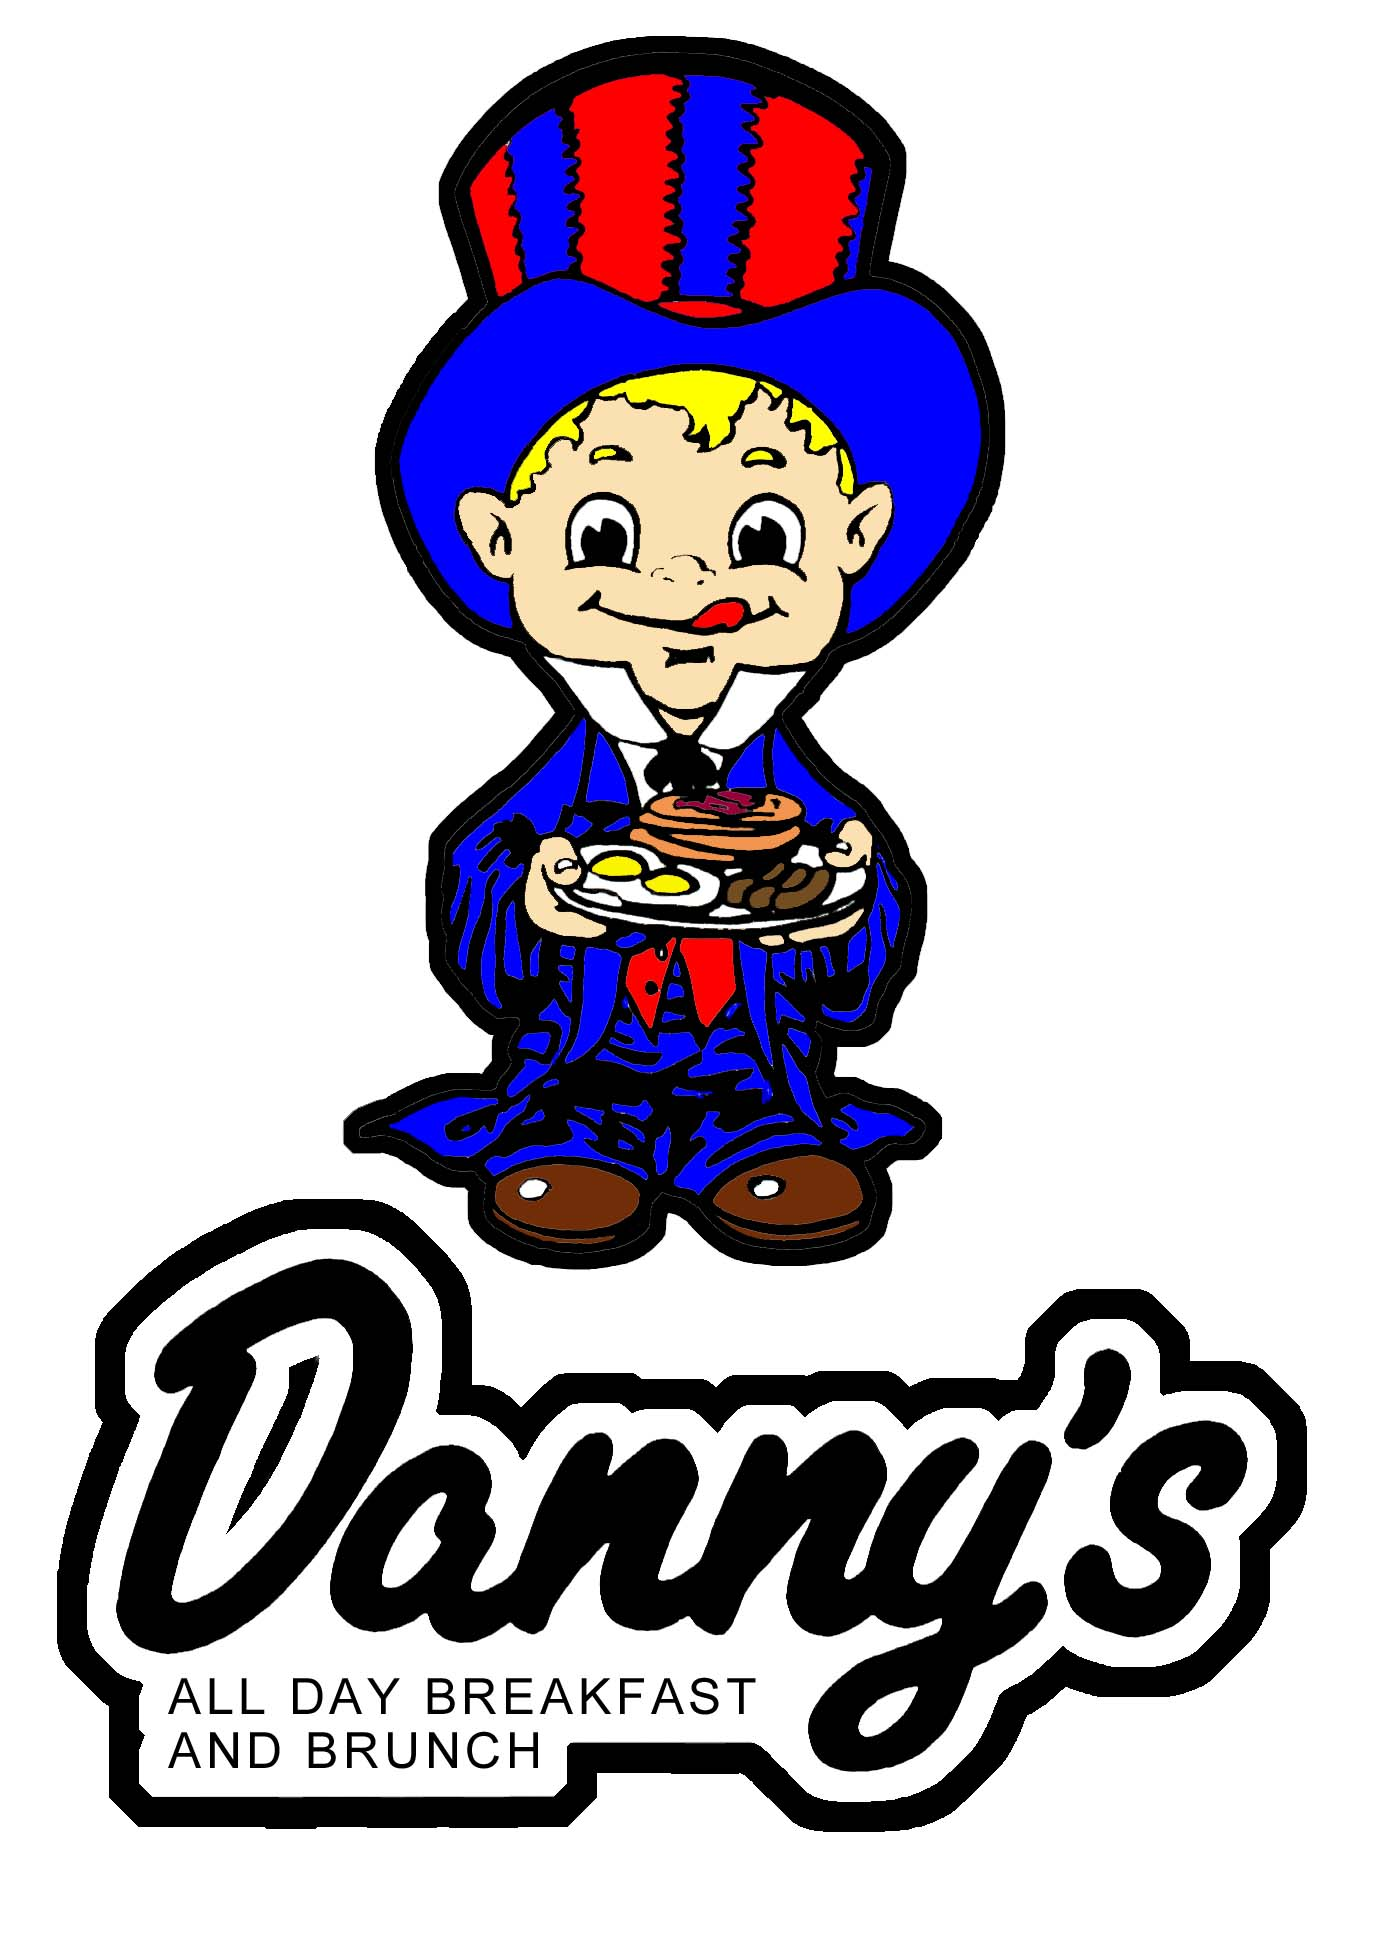 Danny's All Day Breakfast & Brunch @dannysbreakfast.ca